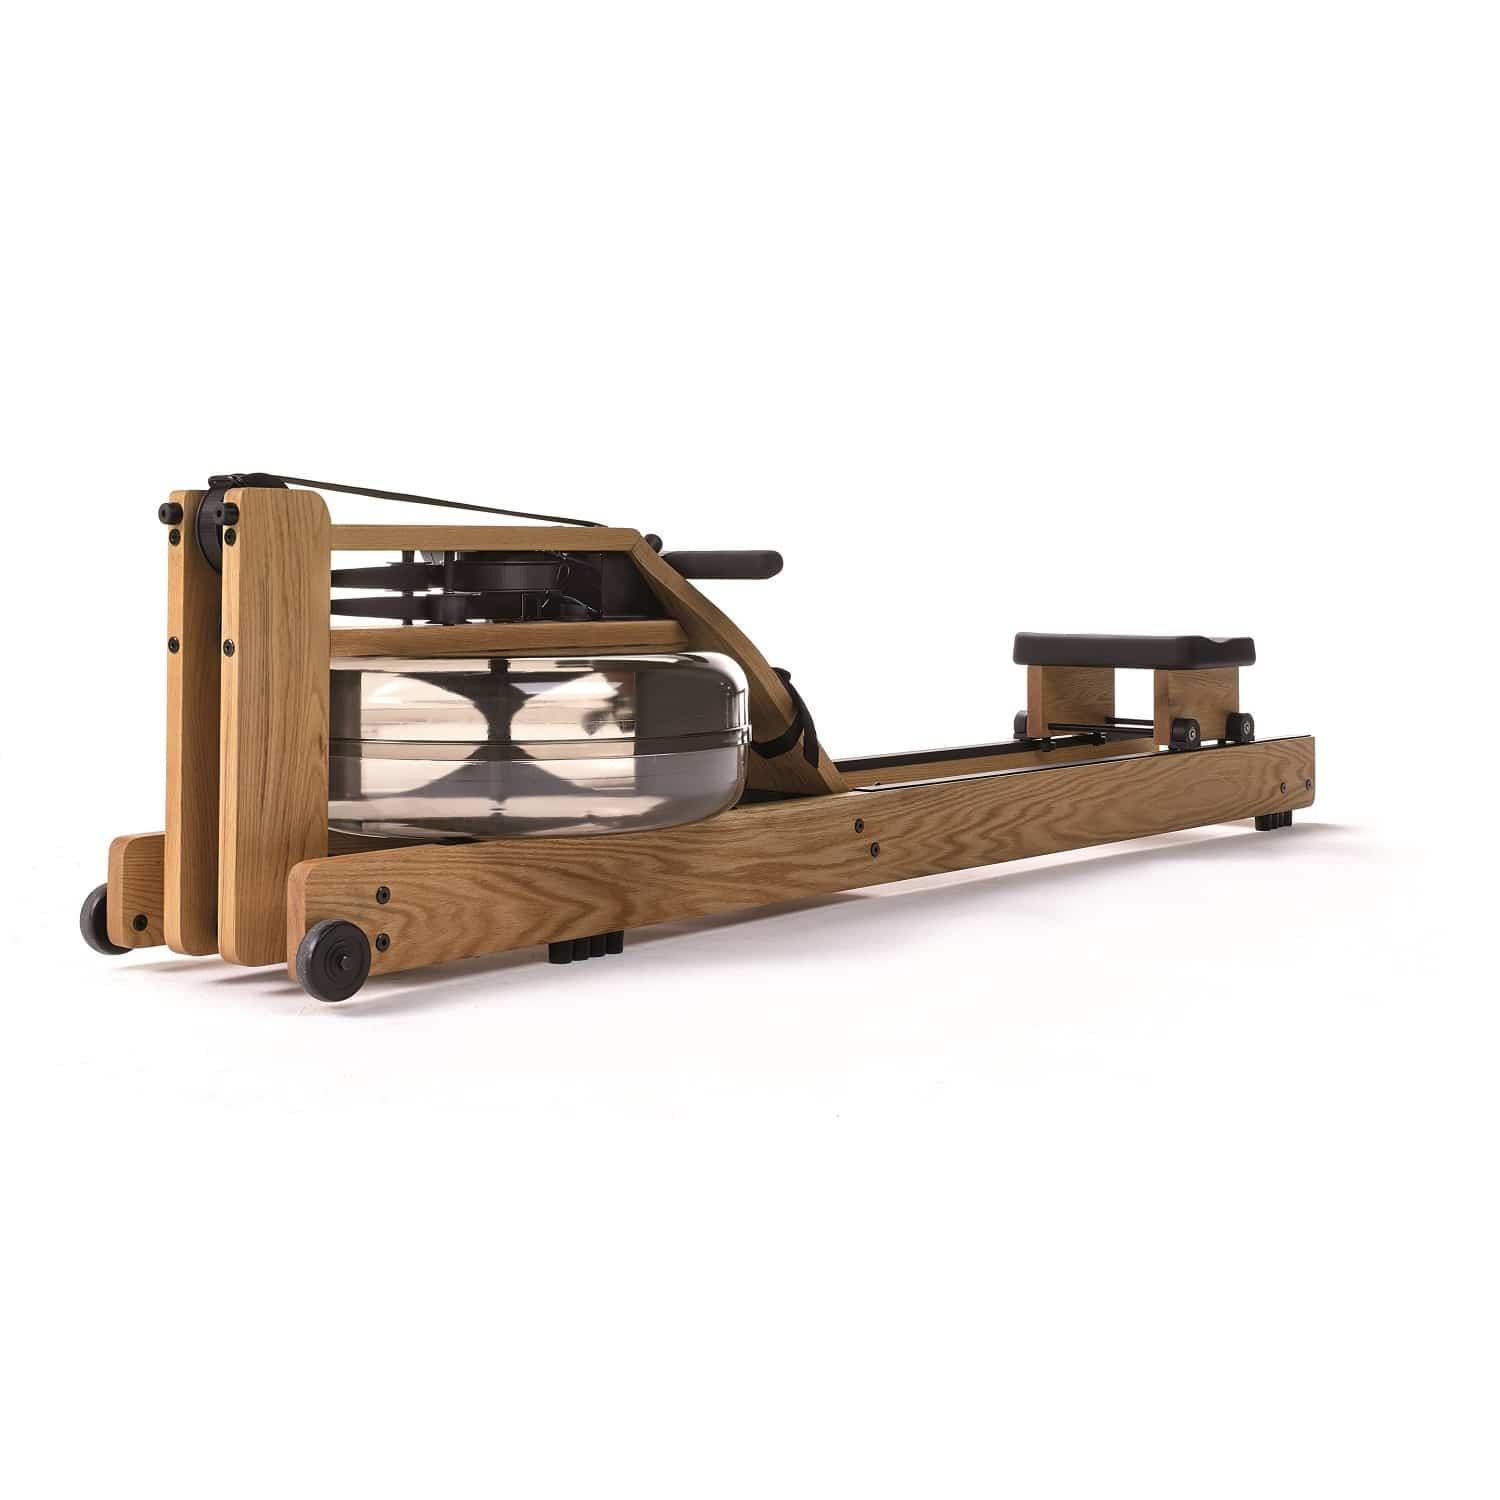 rameur waterrower est un rameur r sistance eau fabriqu en bois. Black Bedroom Furniture Sets. Home Design Ideas